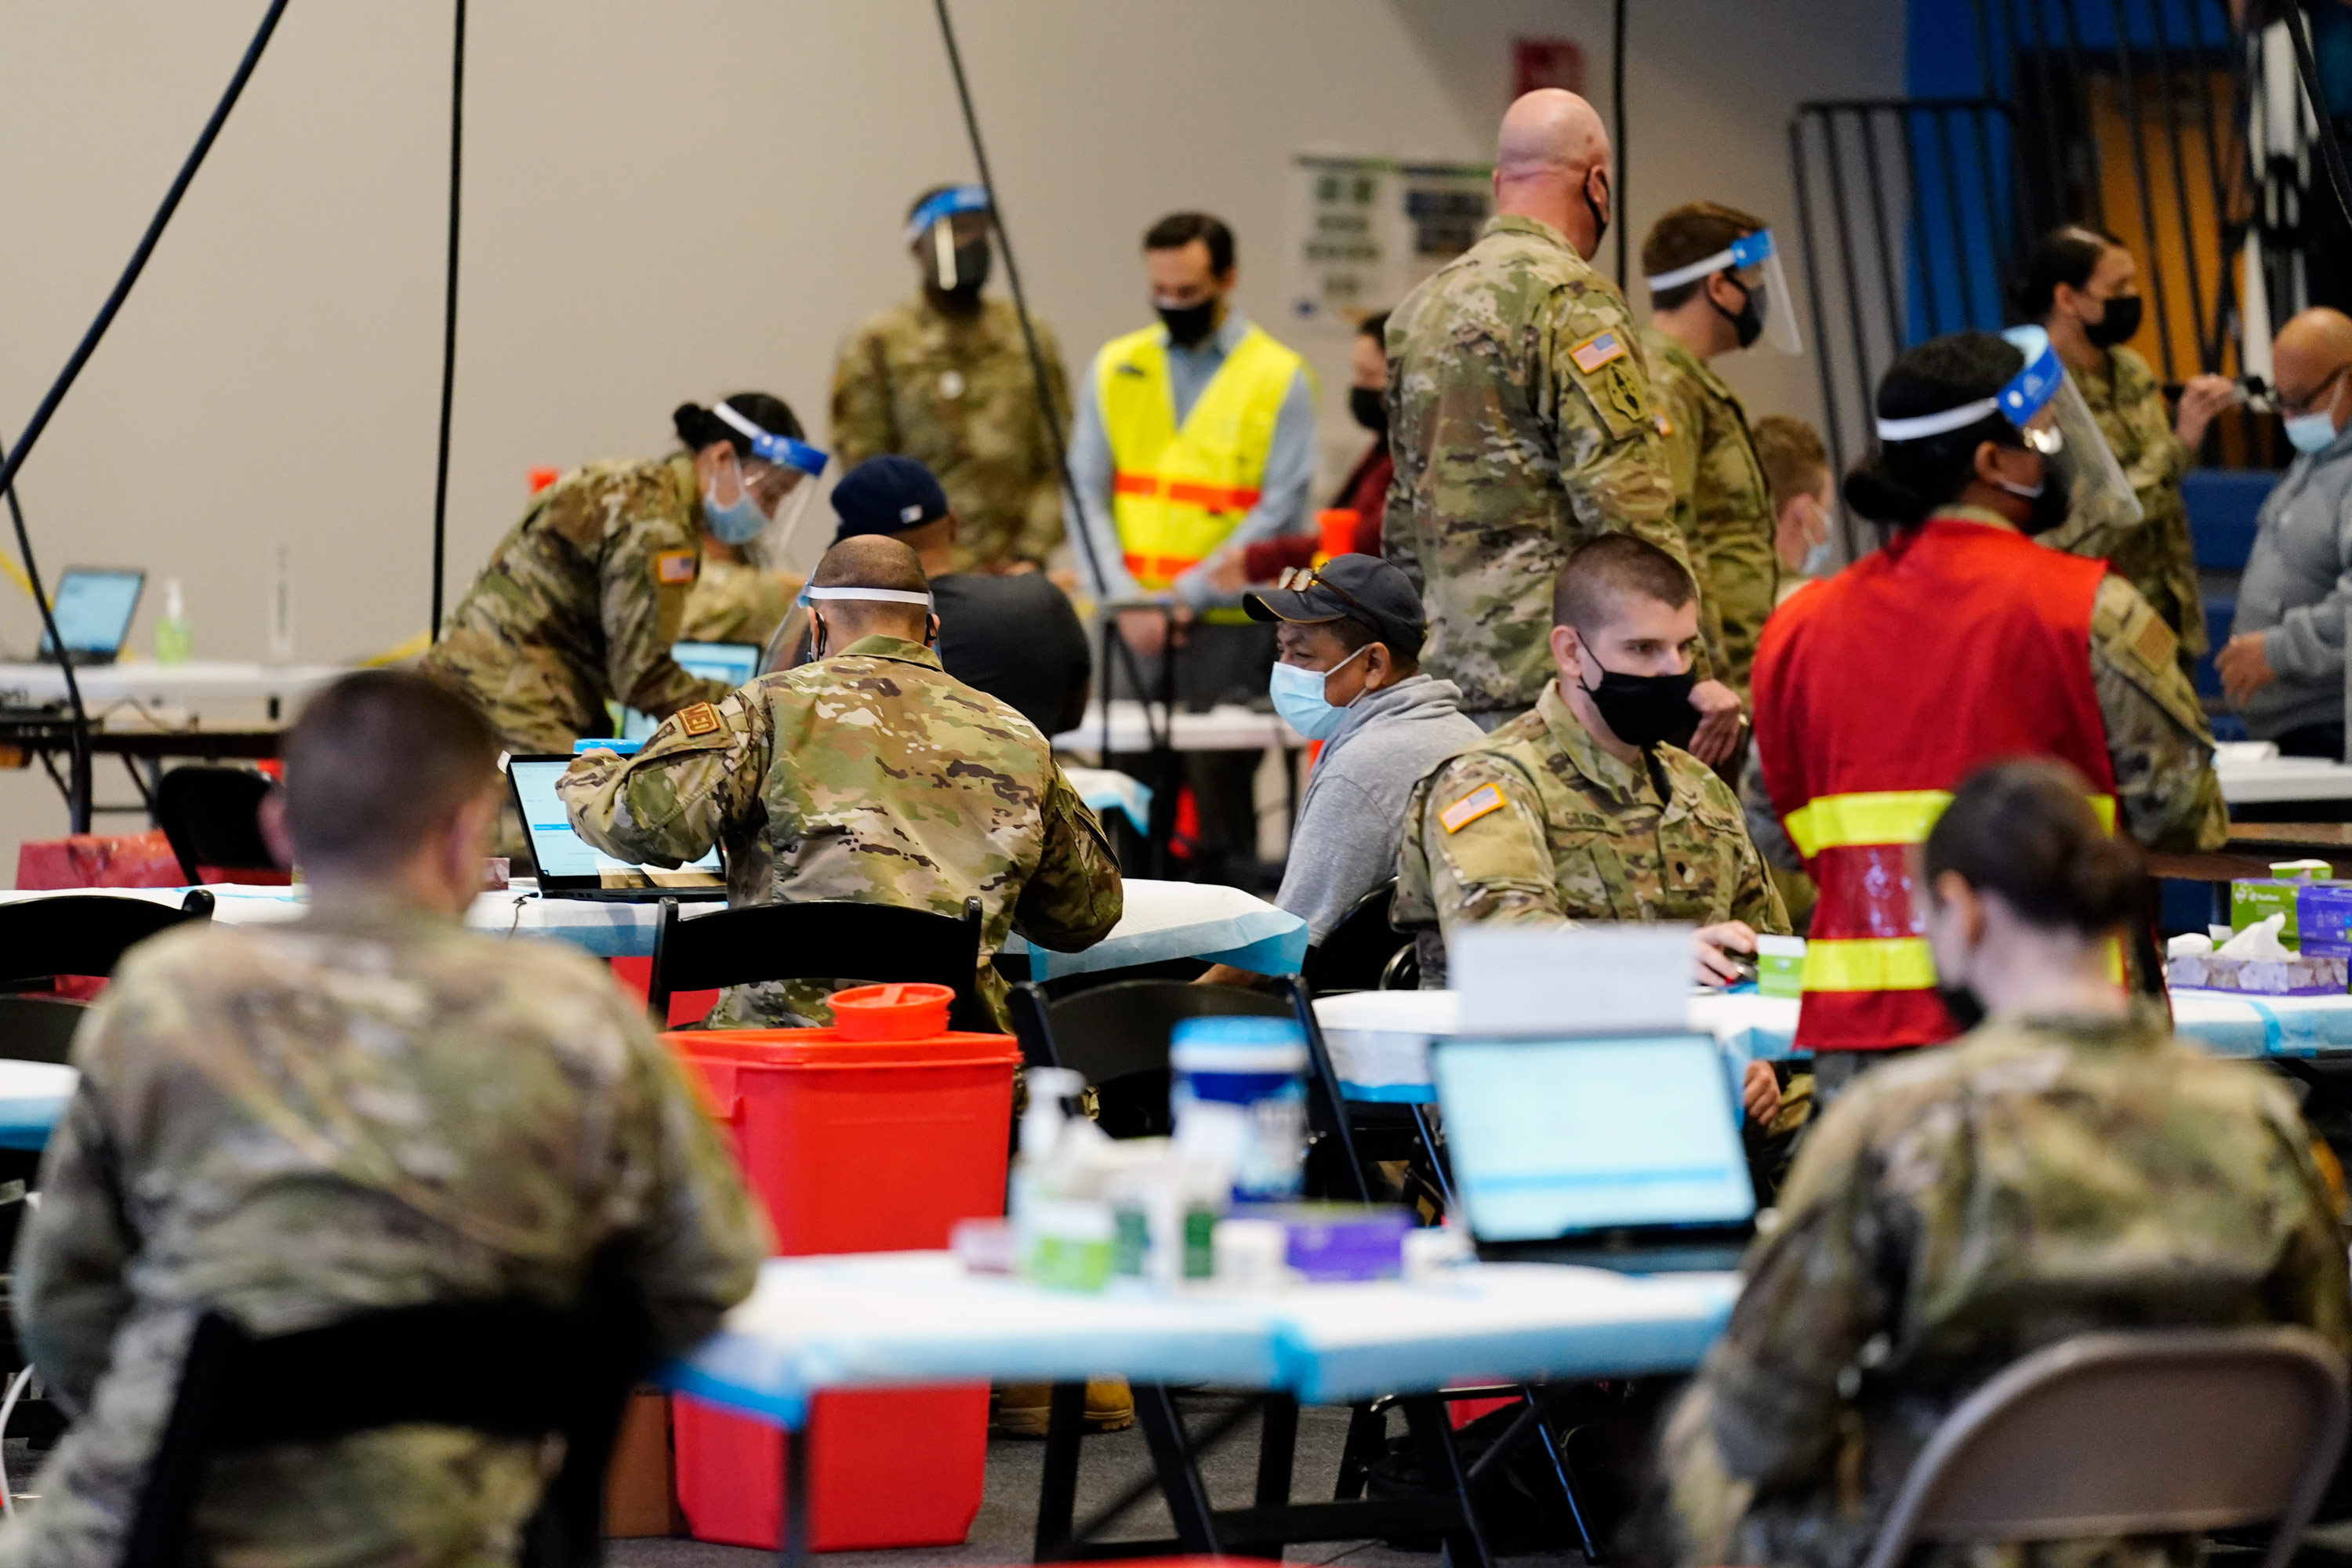 Members of the military inoculate people with the Johnson & Johnson COVID-19 vaccine at the Esperanza Community Vaccination Center in Philadelphia on April 9.